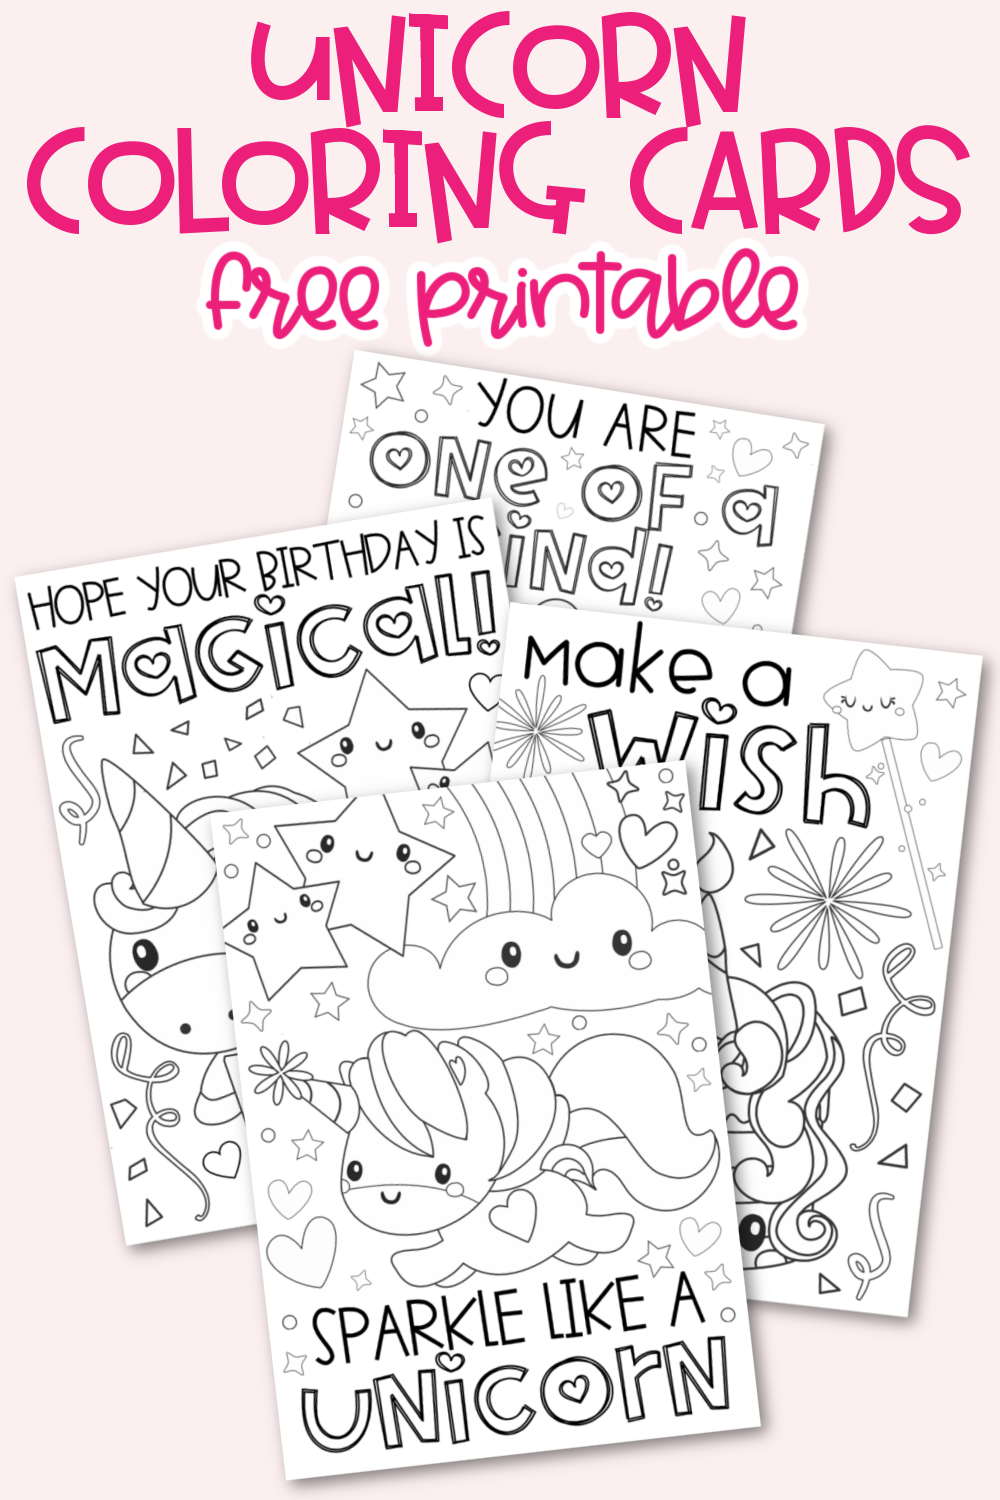 Unicorn Coloring Cards(1)